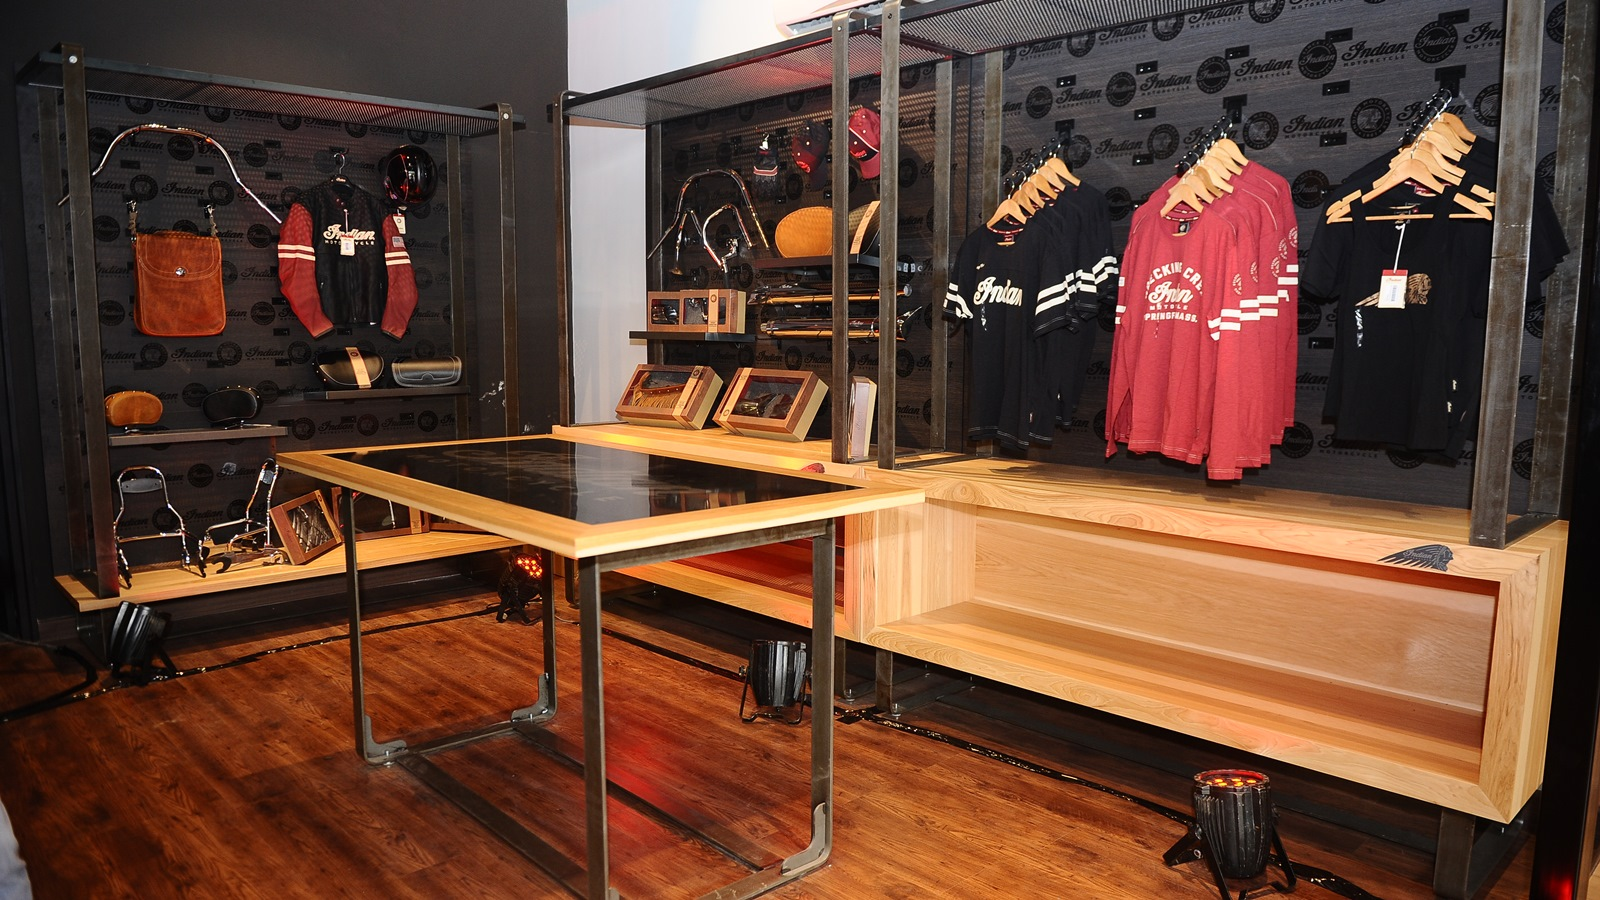 Indian Motorcycle Dealership India Inauguration Merchandise Section